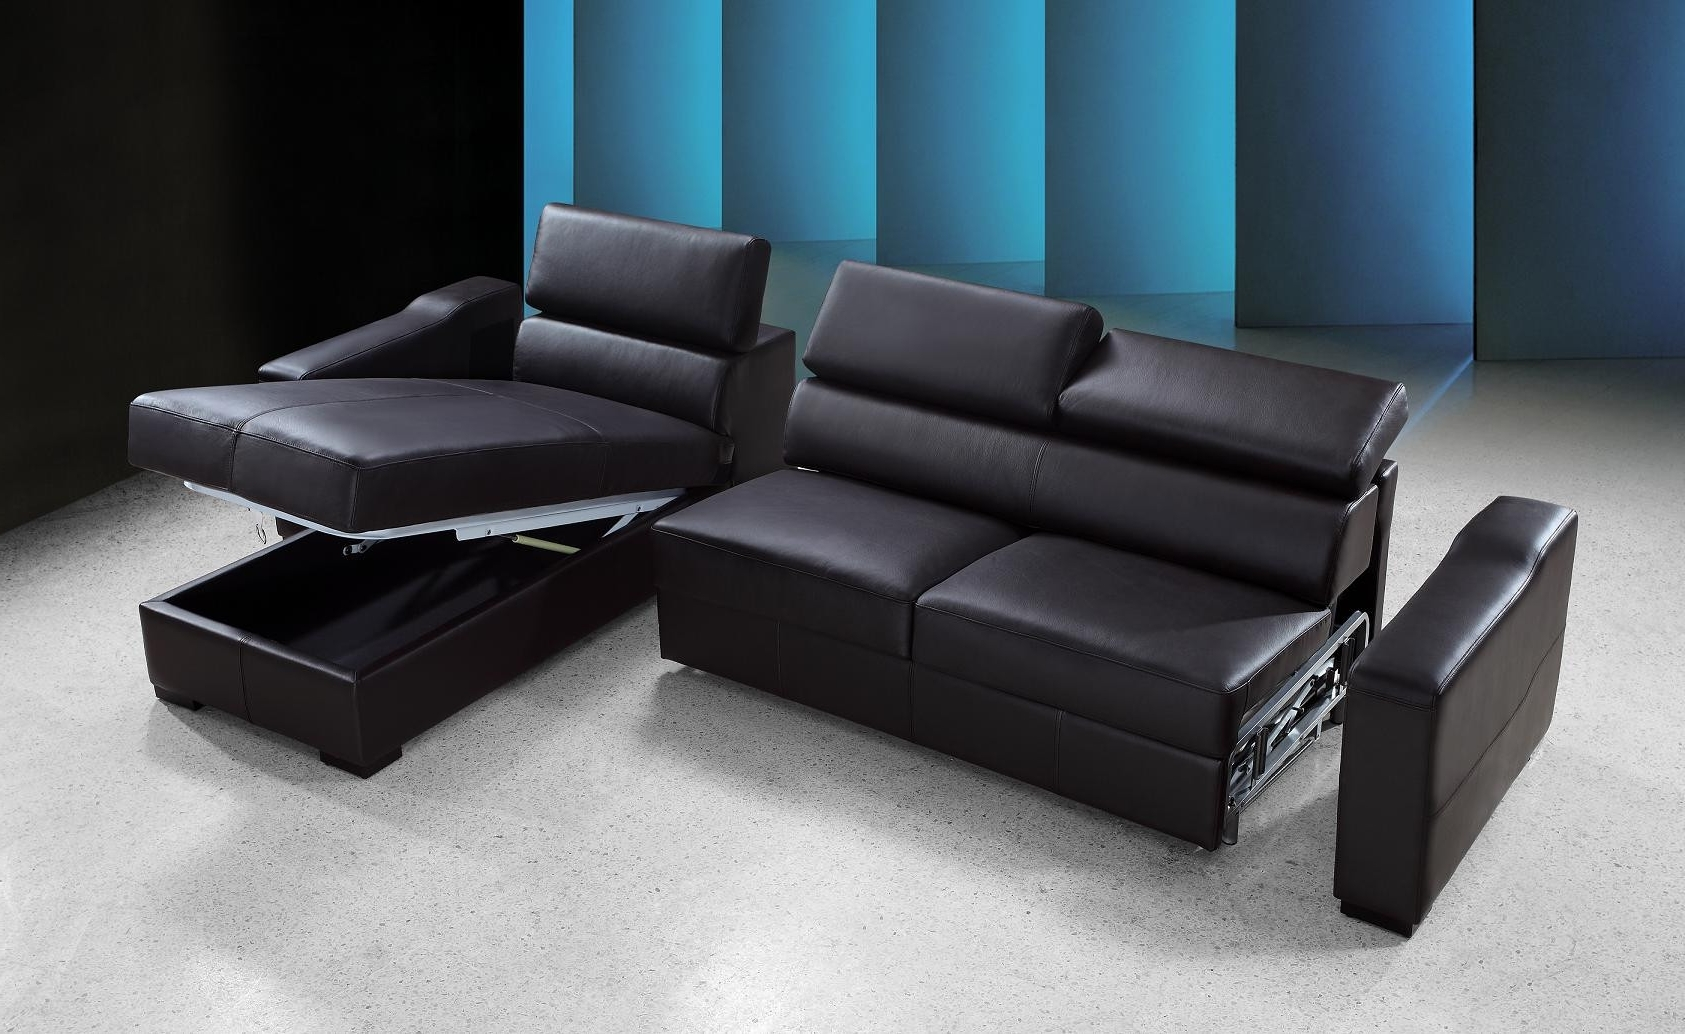 Reversible Espresso Leather Sectional Sofa Bed W/ Storage With Preferred Sofas With Reversible Chaise Lounge (View 6 of 15)